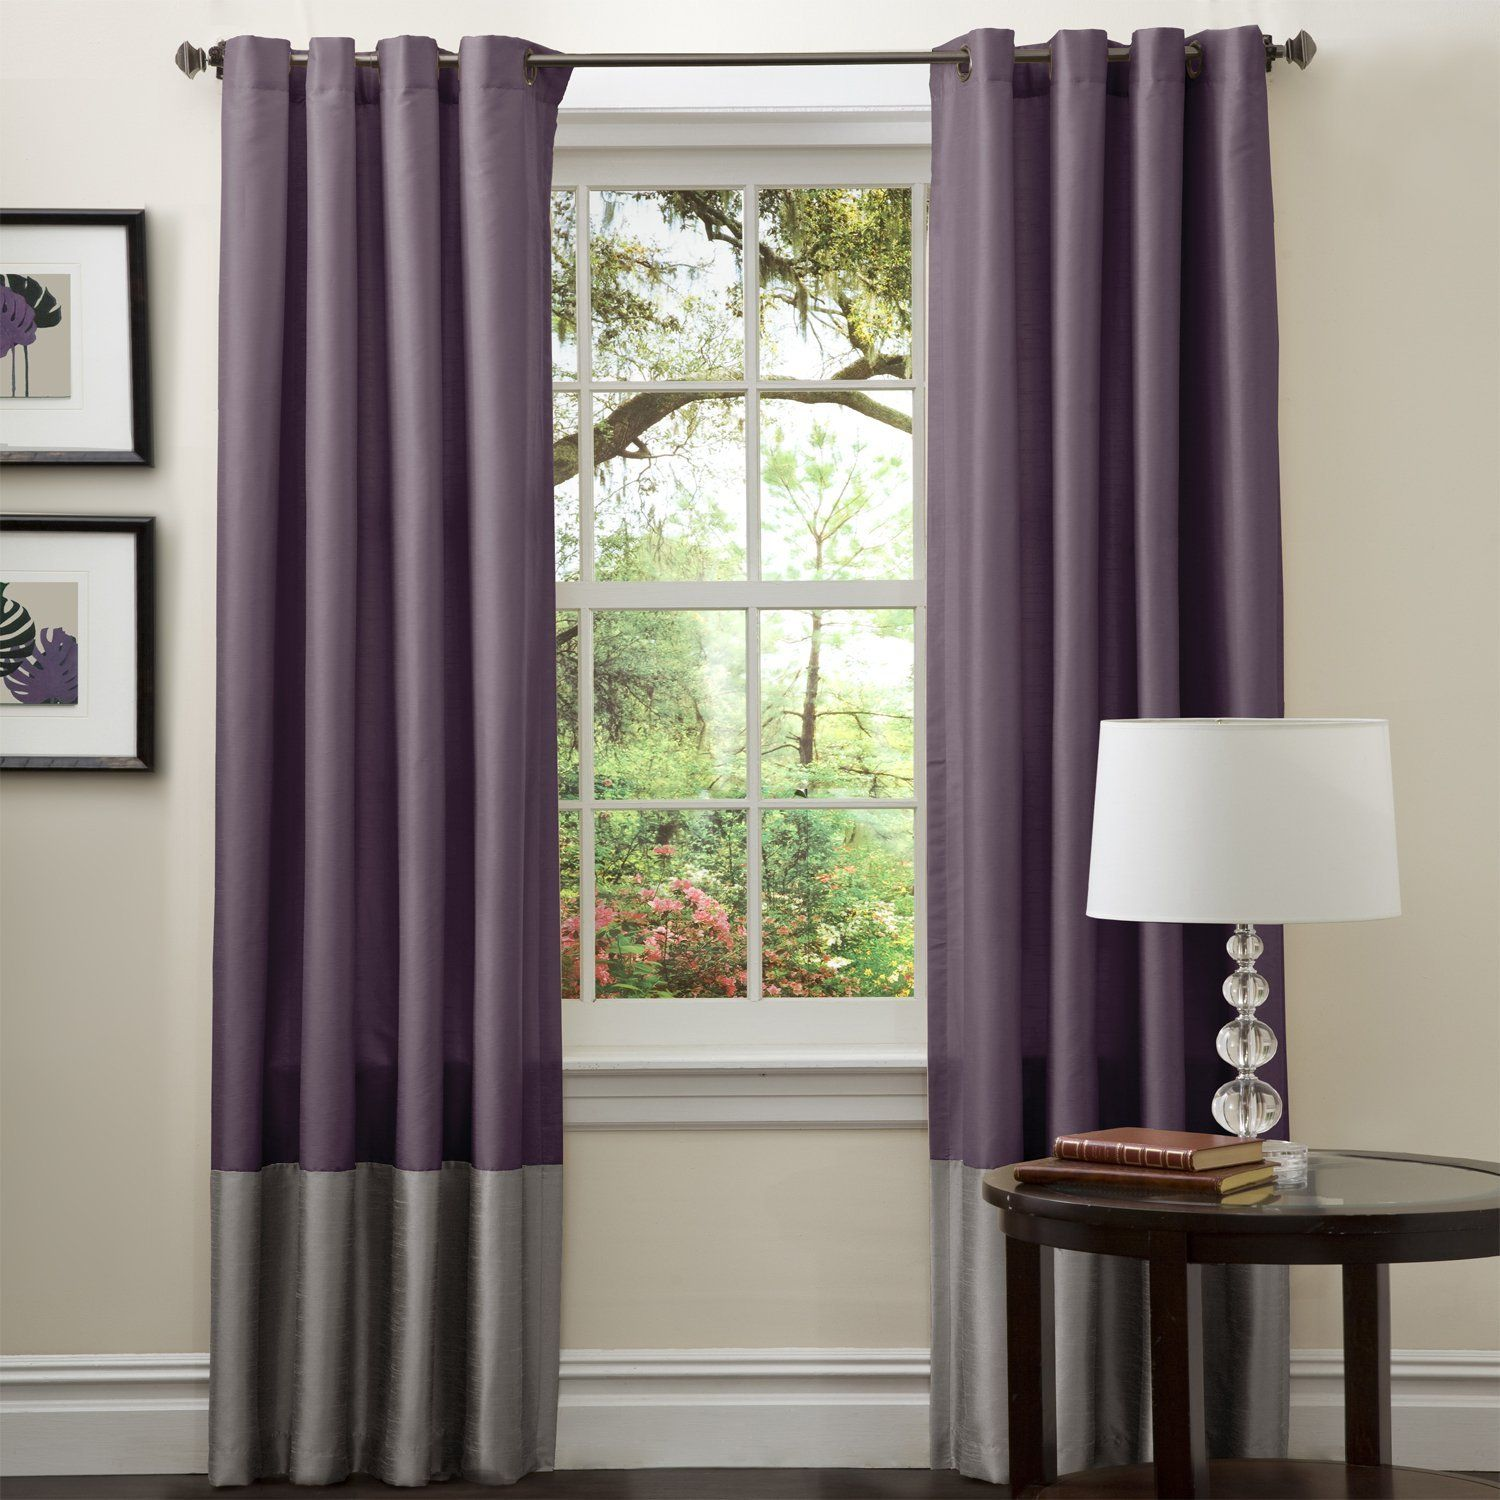 Brown curtains in bedroom - The Fantastic Warm Shades In Plum Curtains Http Draperyroomideas Com